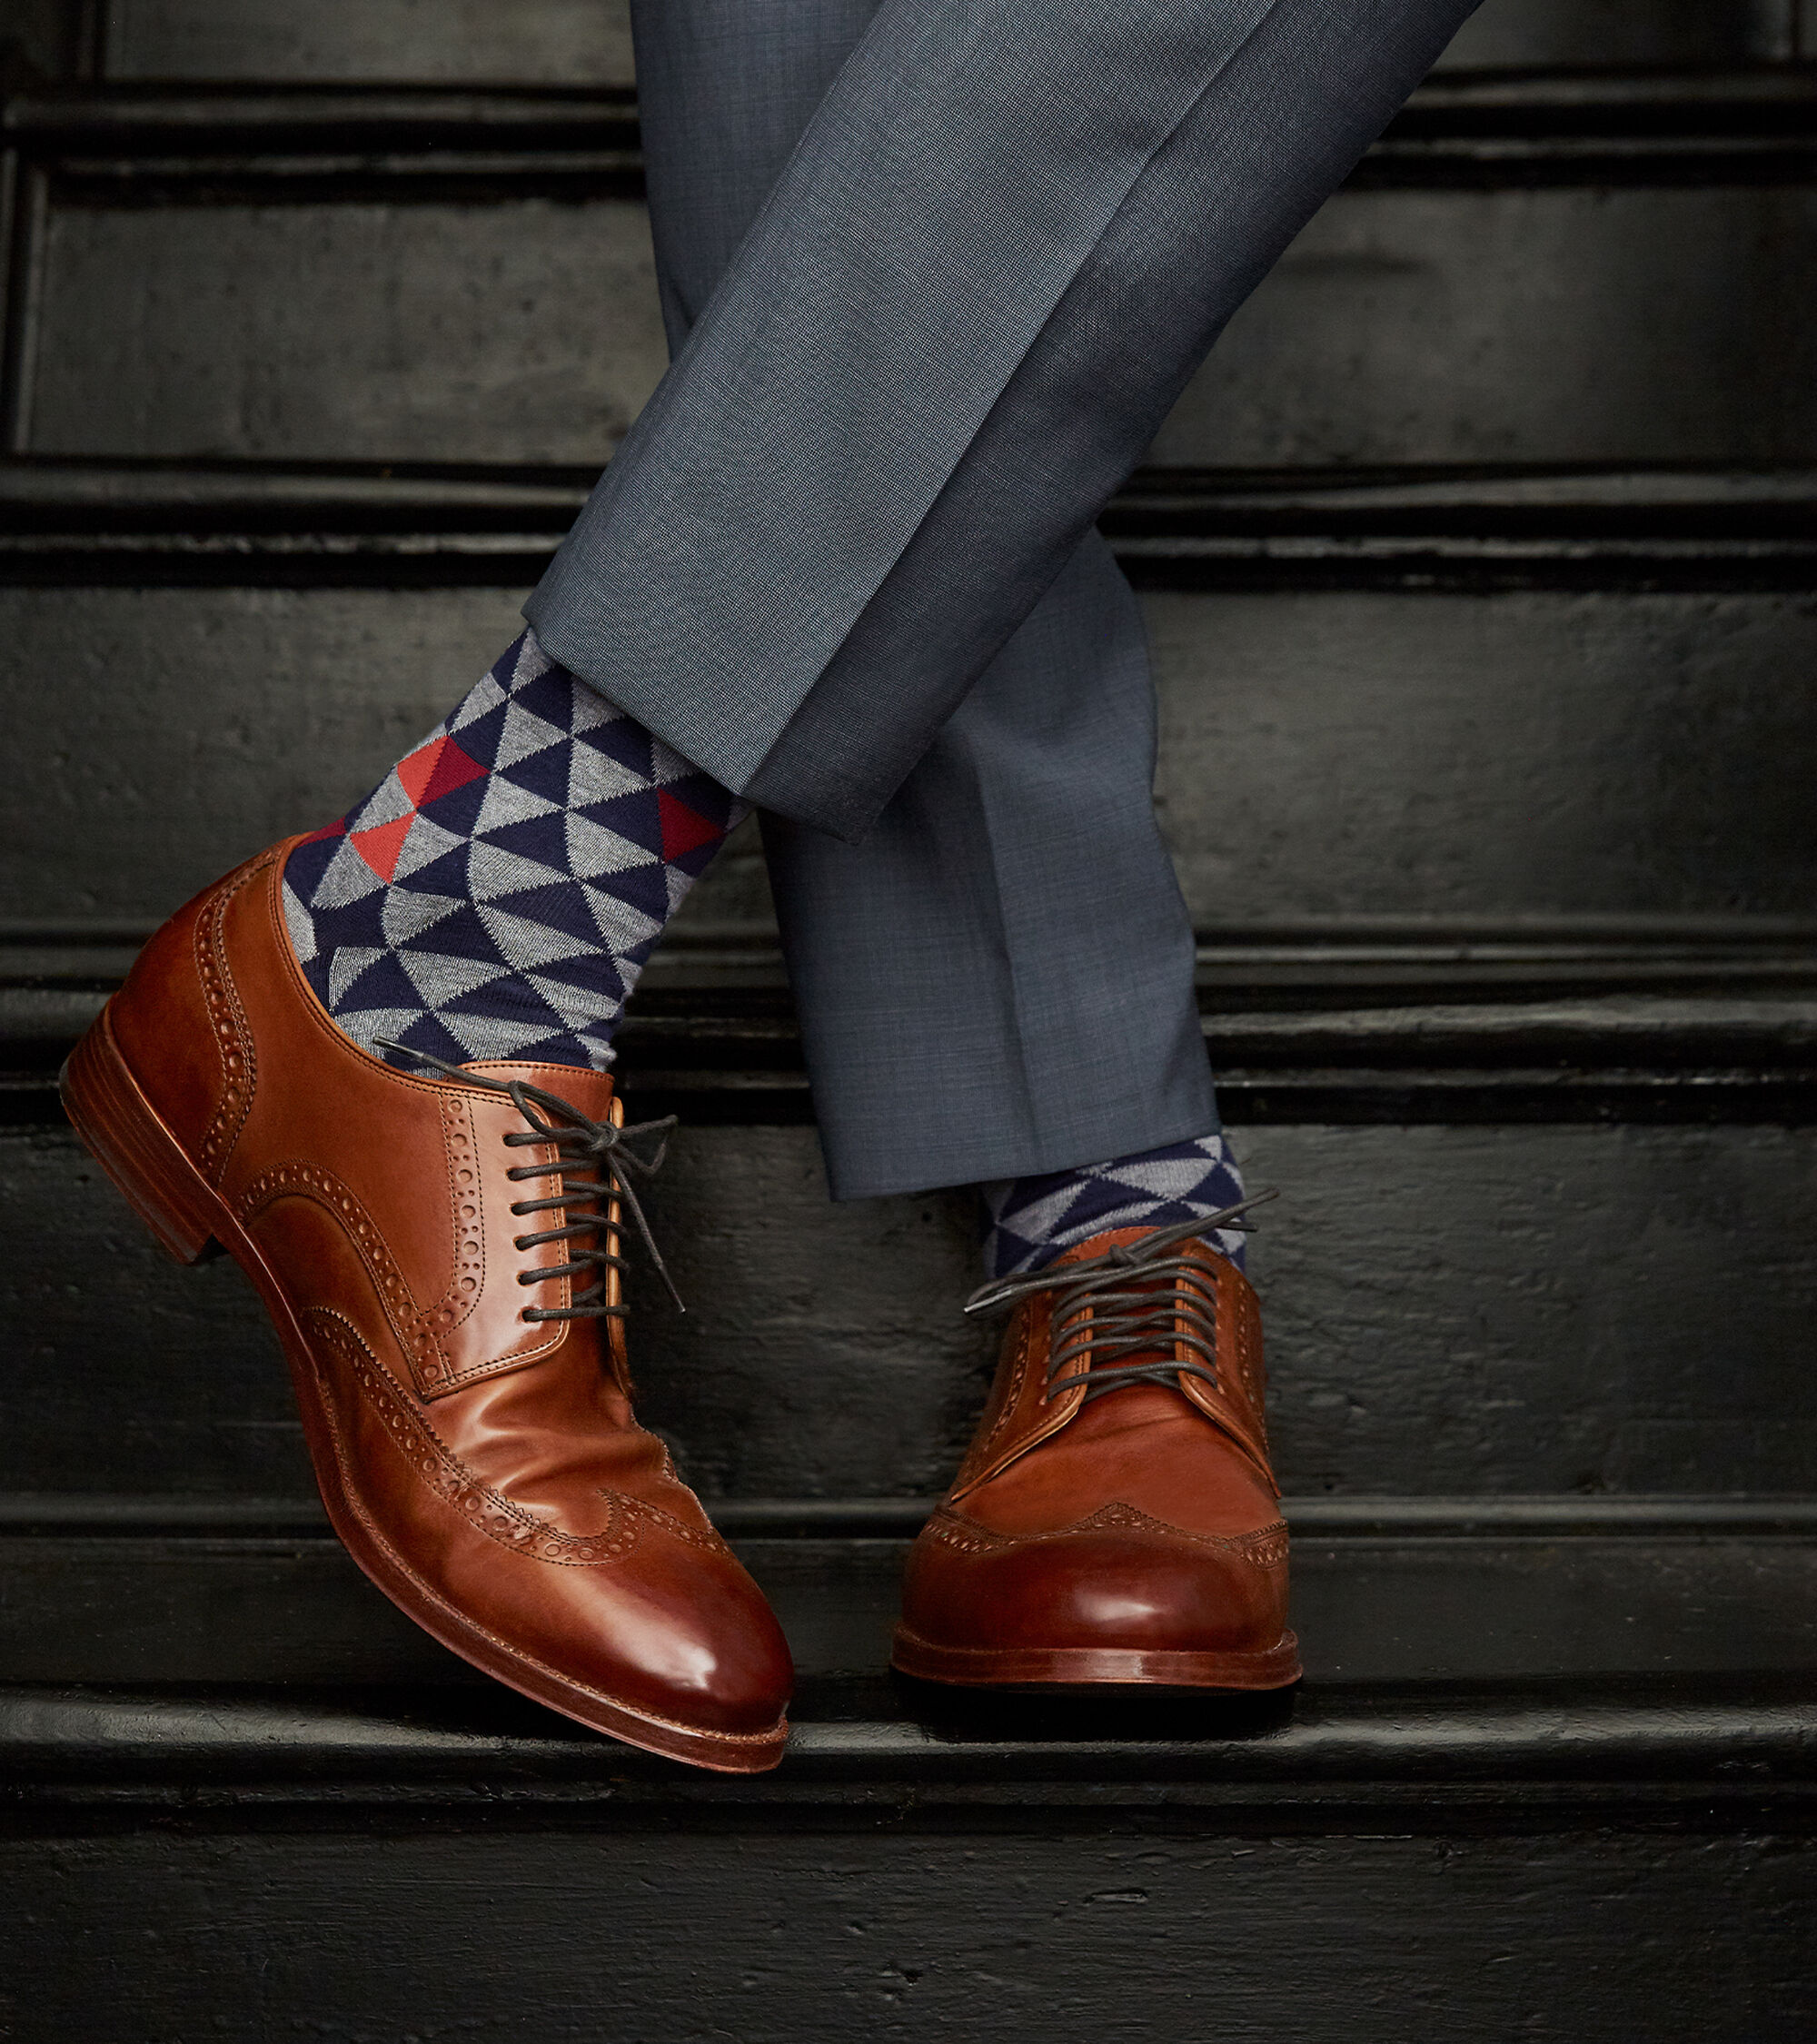 928a1c537 ... Cole Haan American Classic Gramercy Derby Wingtip Oxford ...